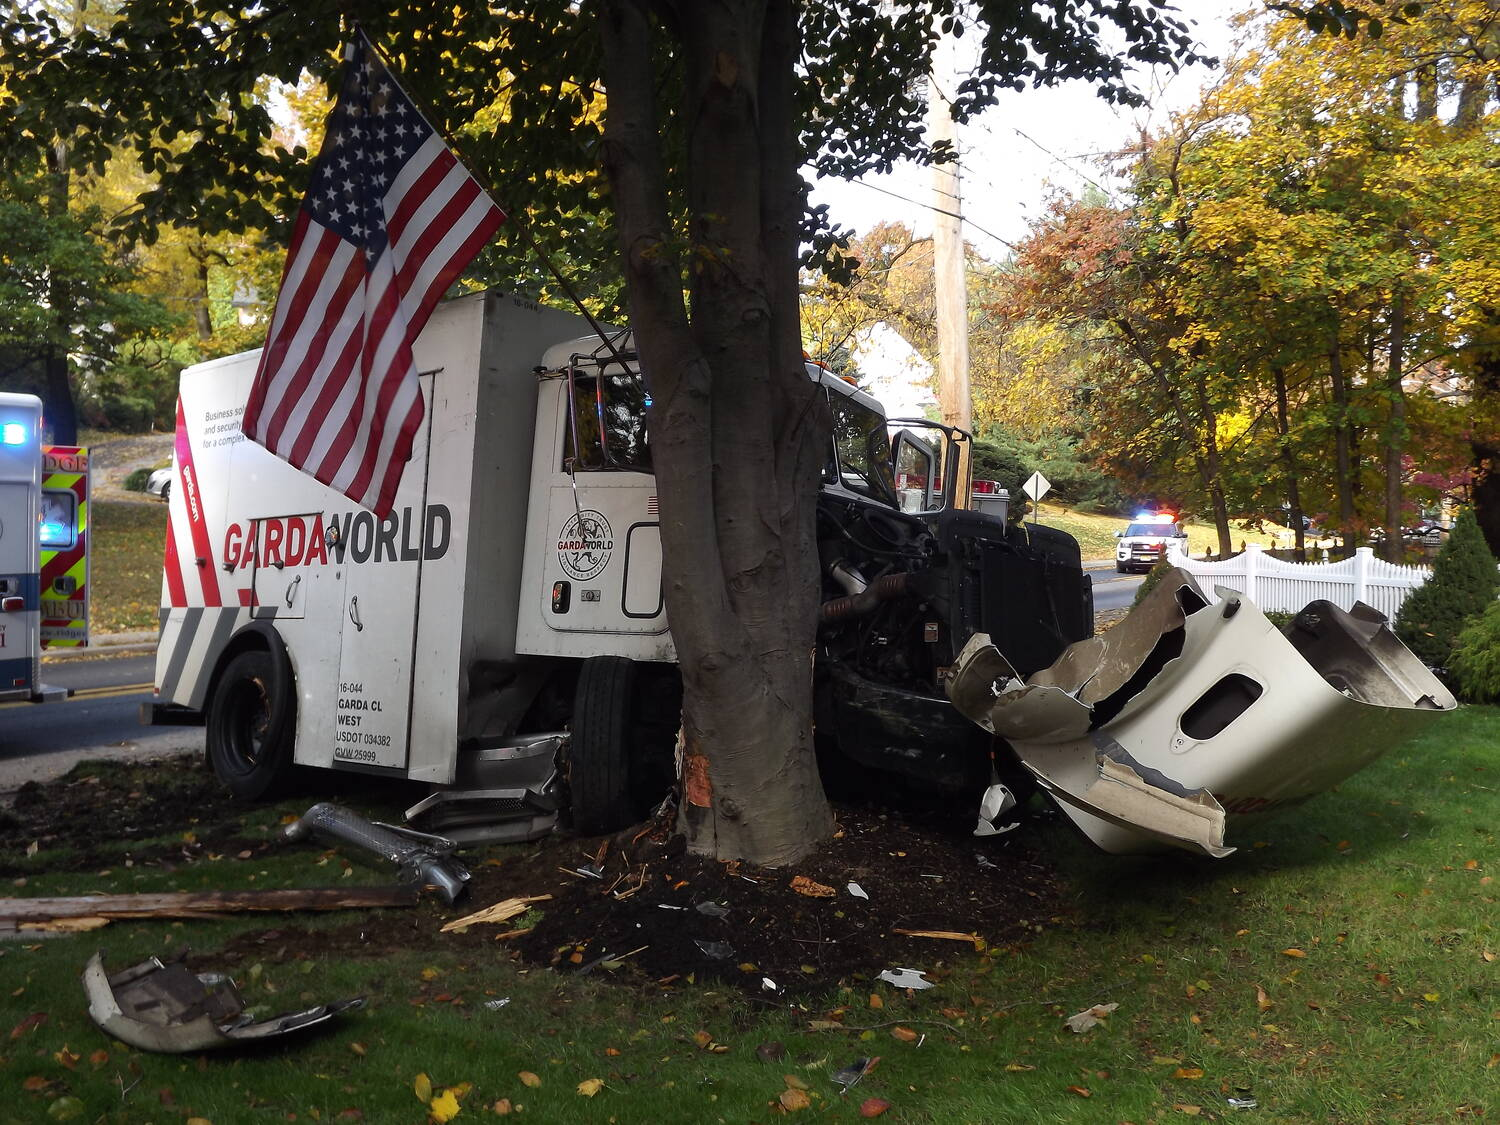 A GardaWorld armored car crashed into a tree.